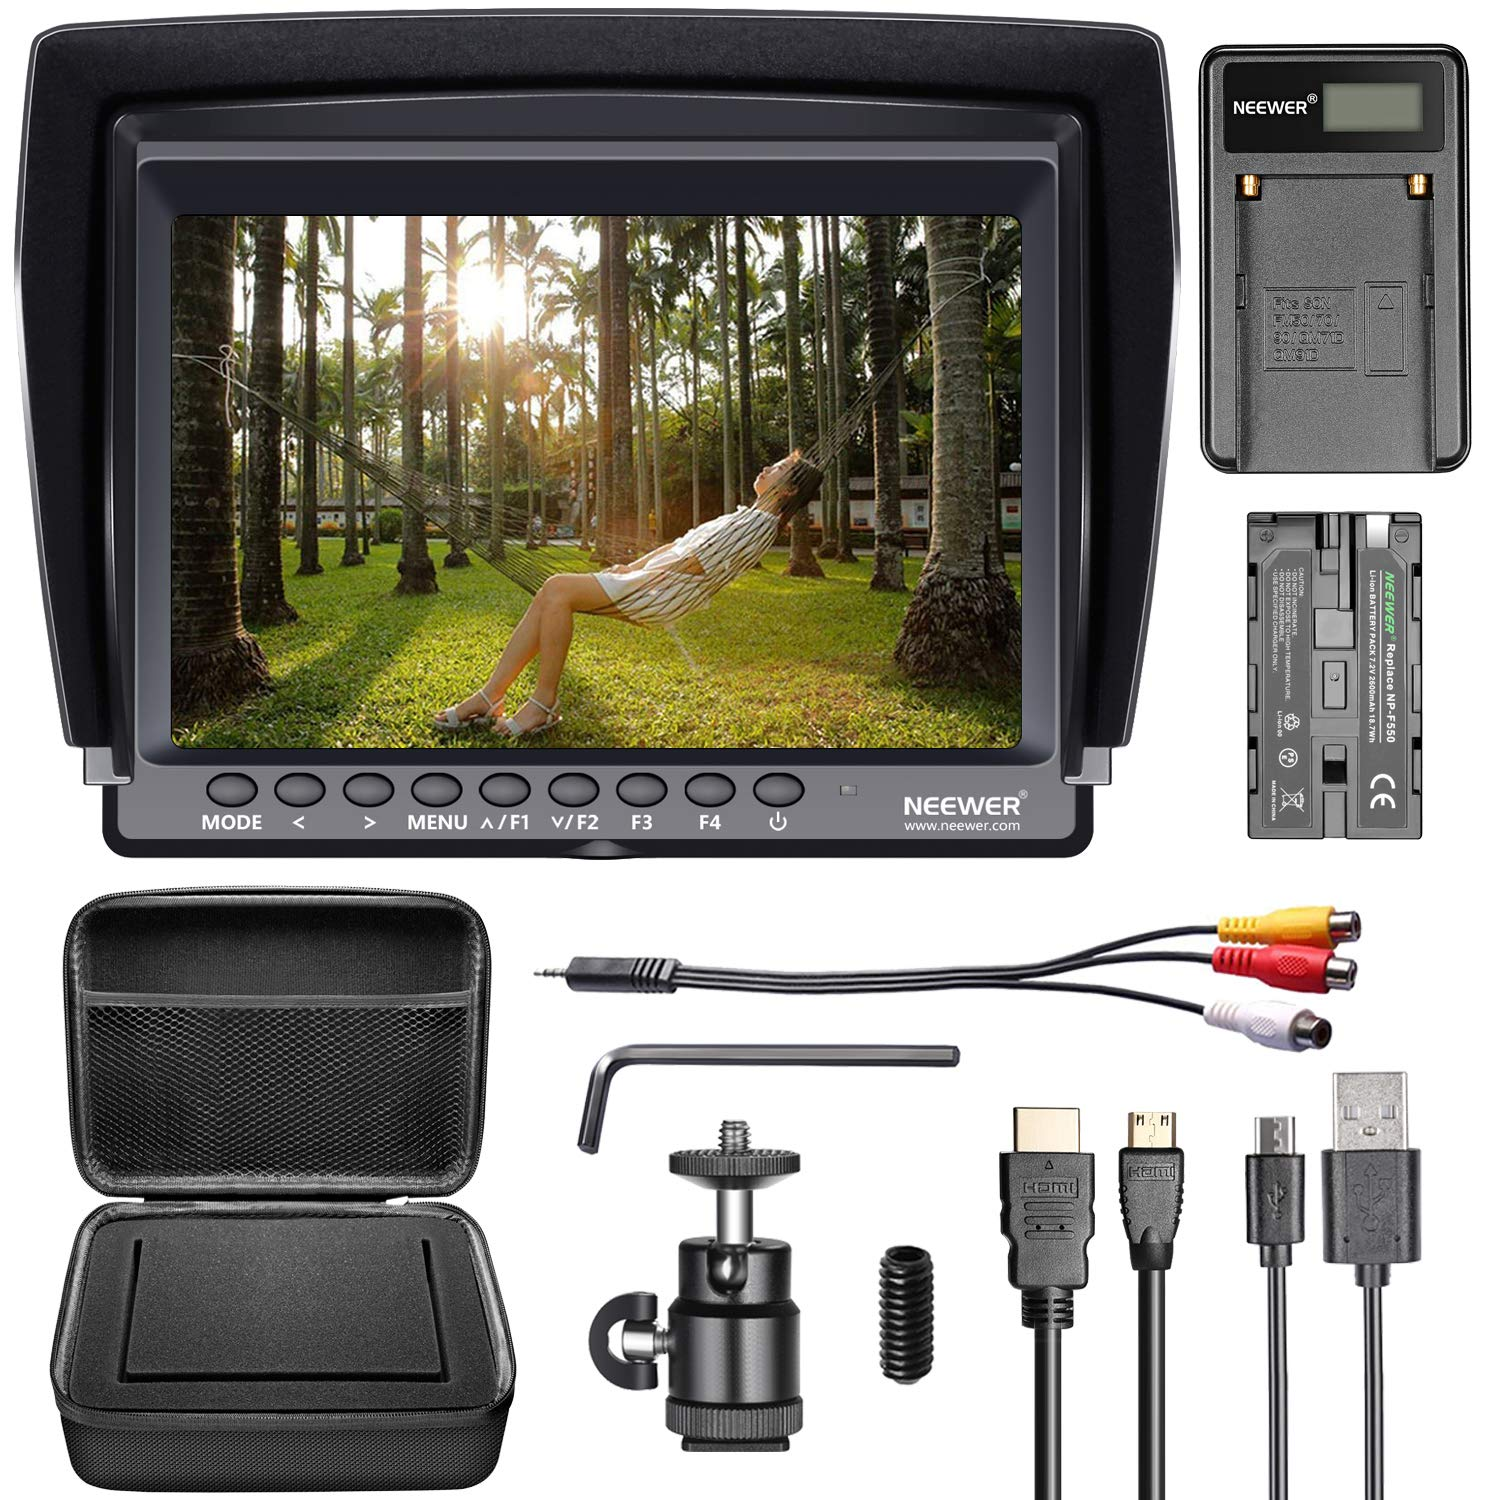 Neewer F100 Camera Field Monitor Kit:7 inches Ultra HD 1280x800 IPS Screen Field Monitor+F550 Replacement Battery+Micro USB Battery Charger+Carrying Case for Sony Canon Nikon Olympus Pentax Panasonic by Neewer